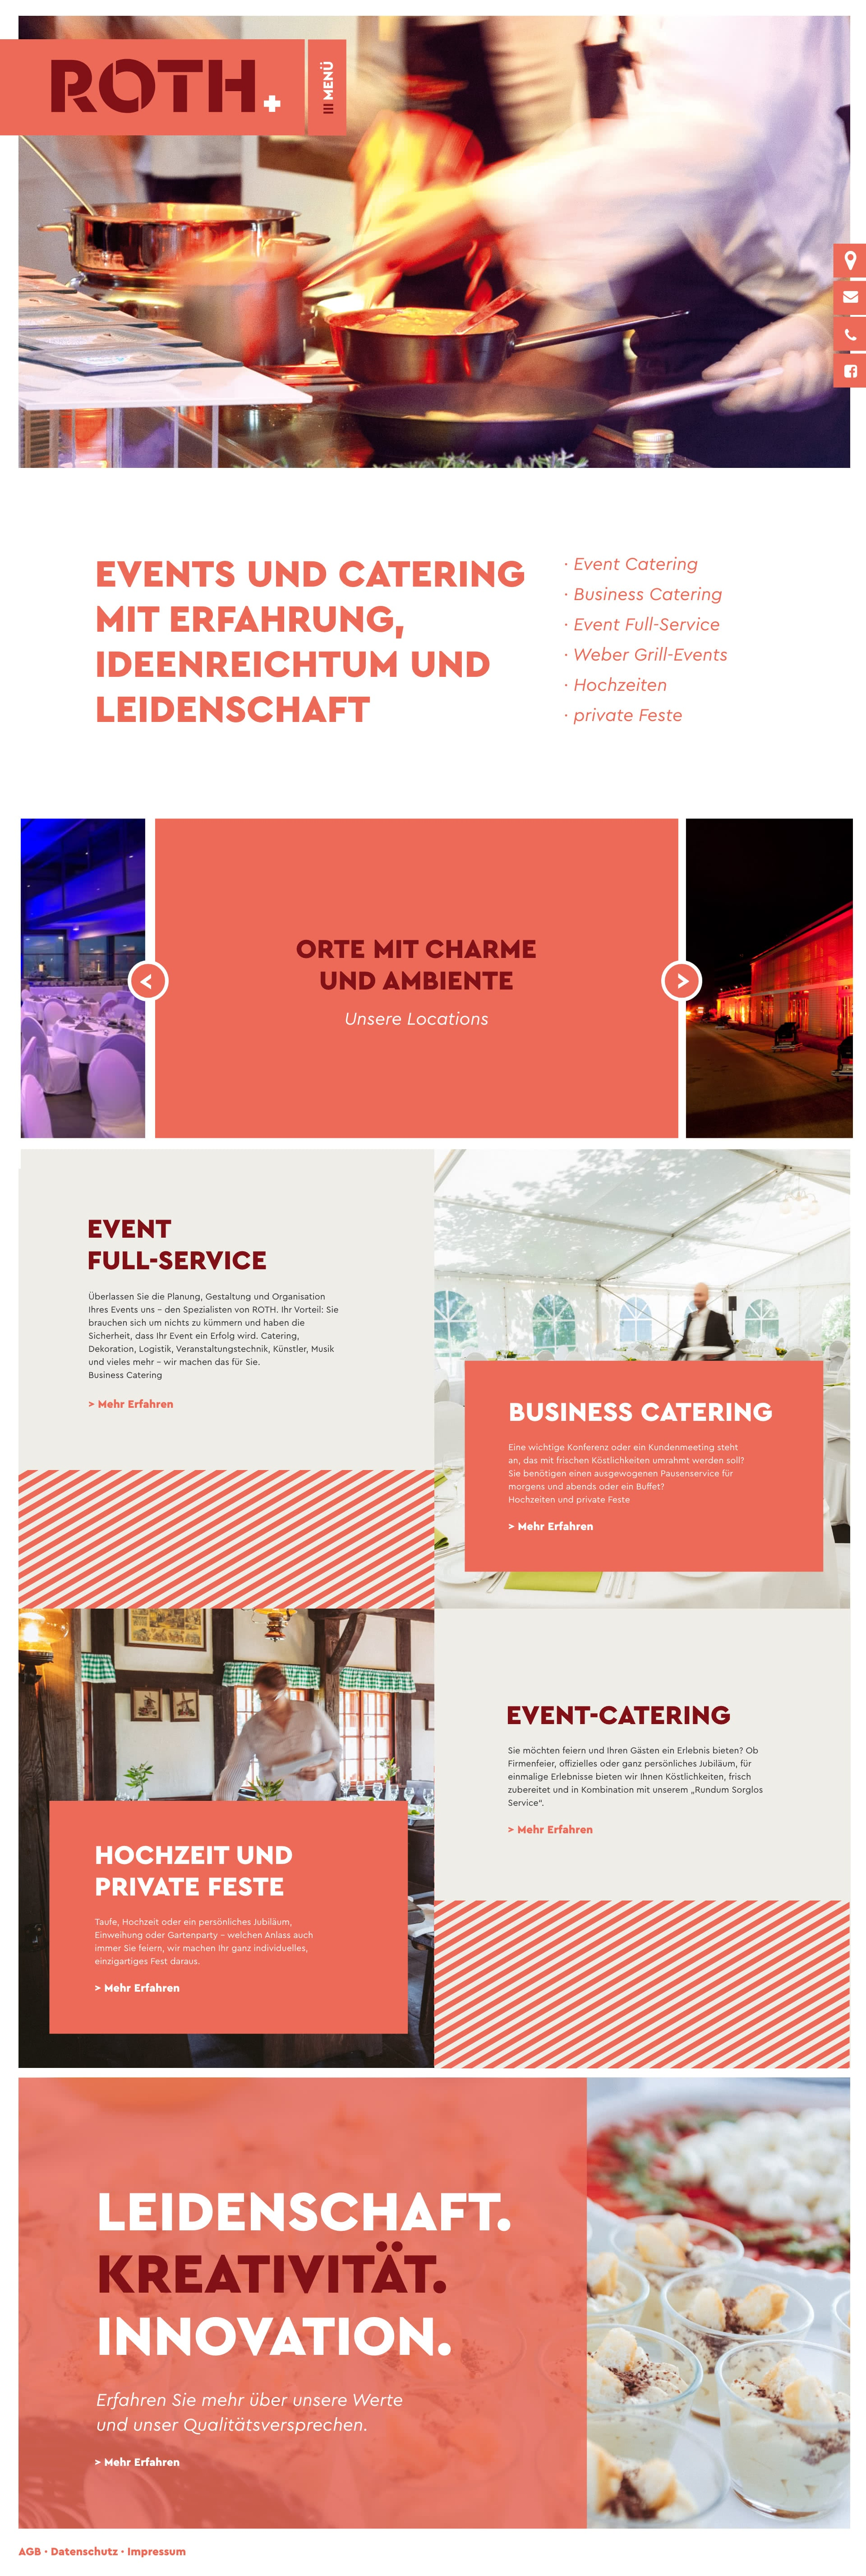 Website von ROTH Catering